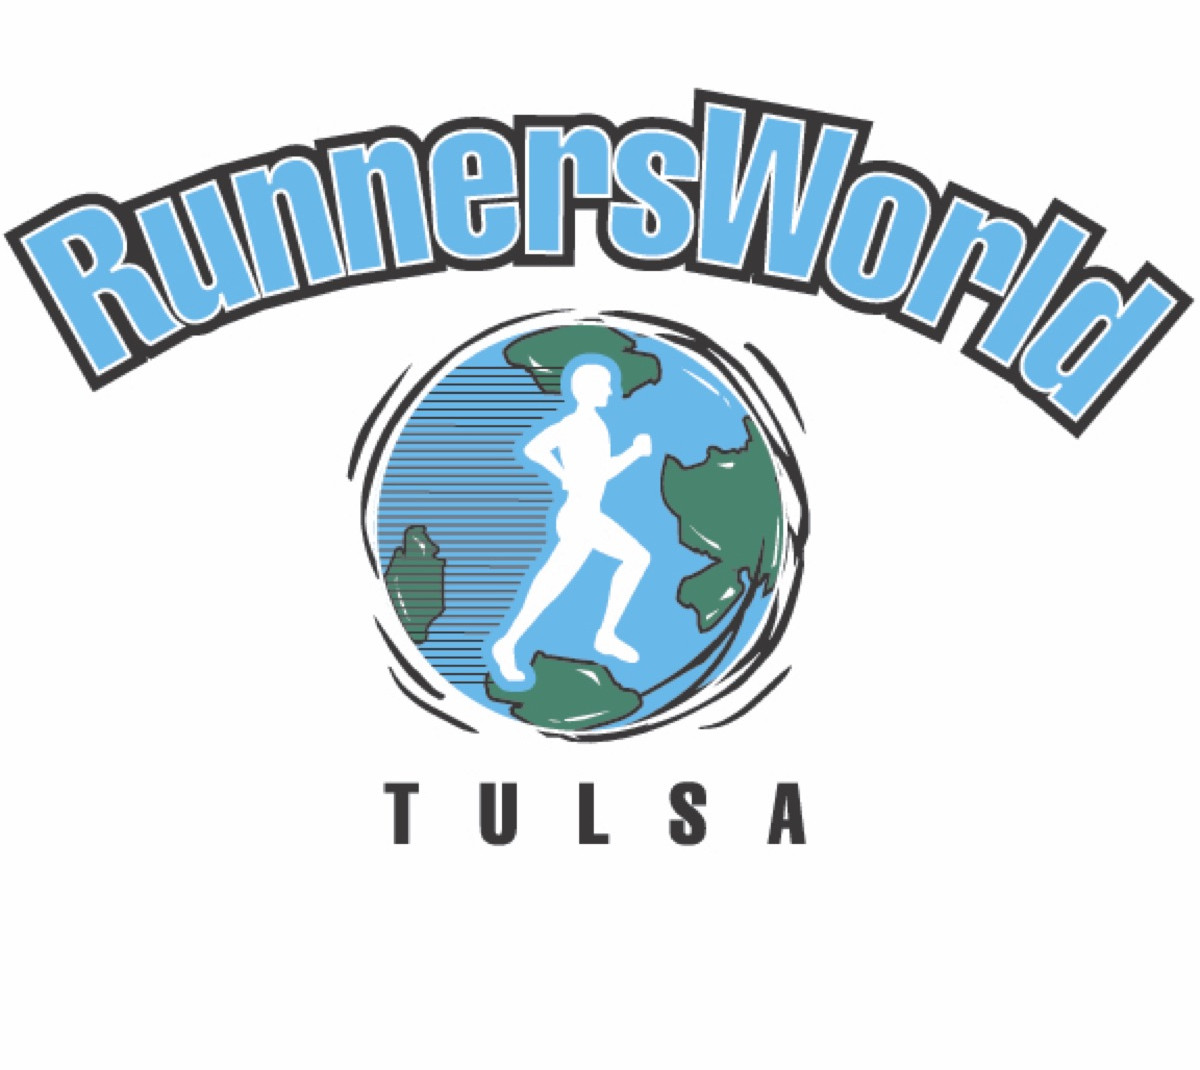 Runners World Tulsa